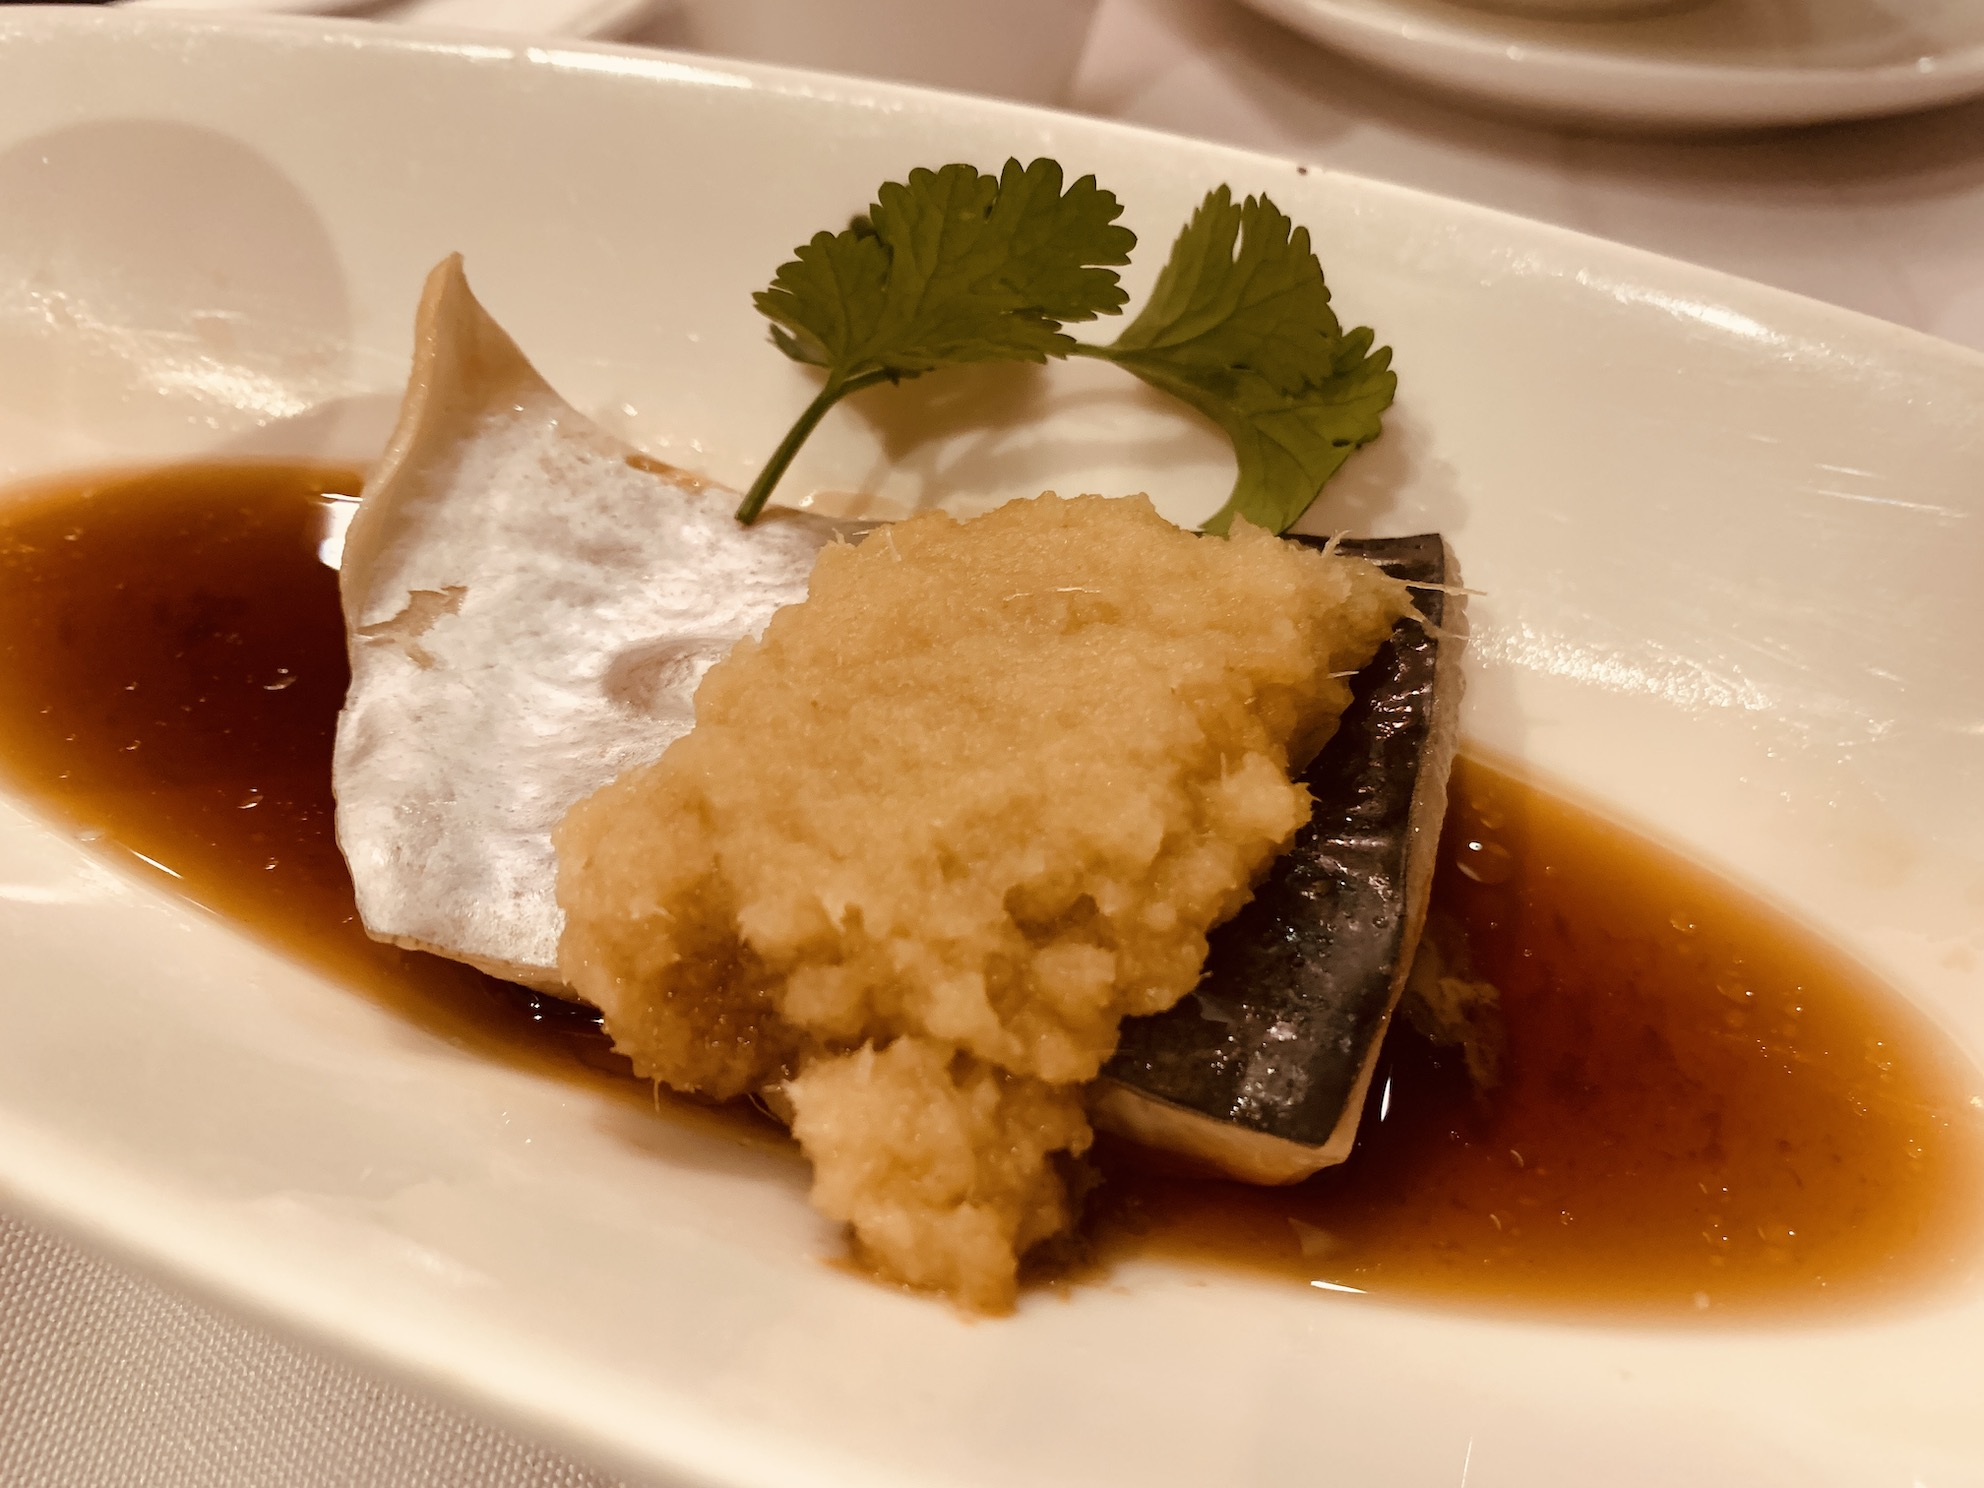 Peach Garden (Chinatown Point) - Steamed Fillet of Pa Ting Fish with Minced Ginger in Superior Soya Sauce